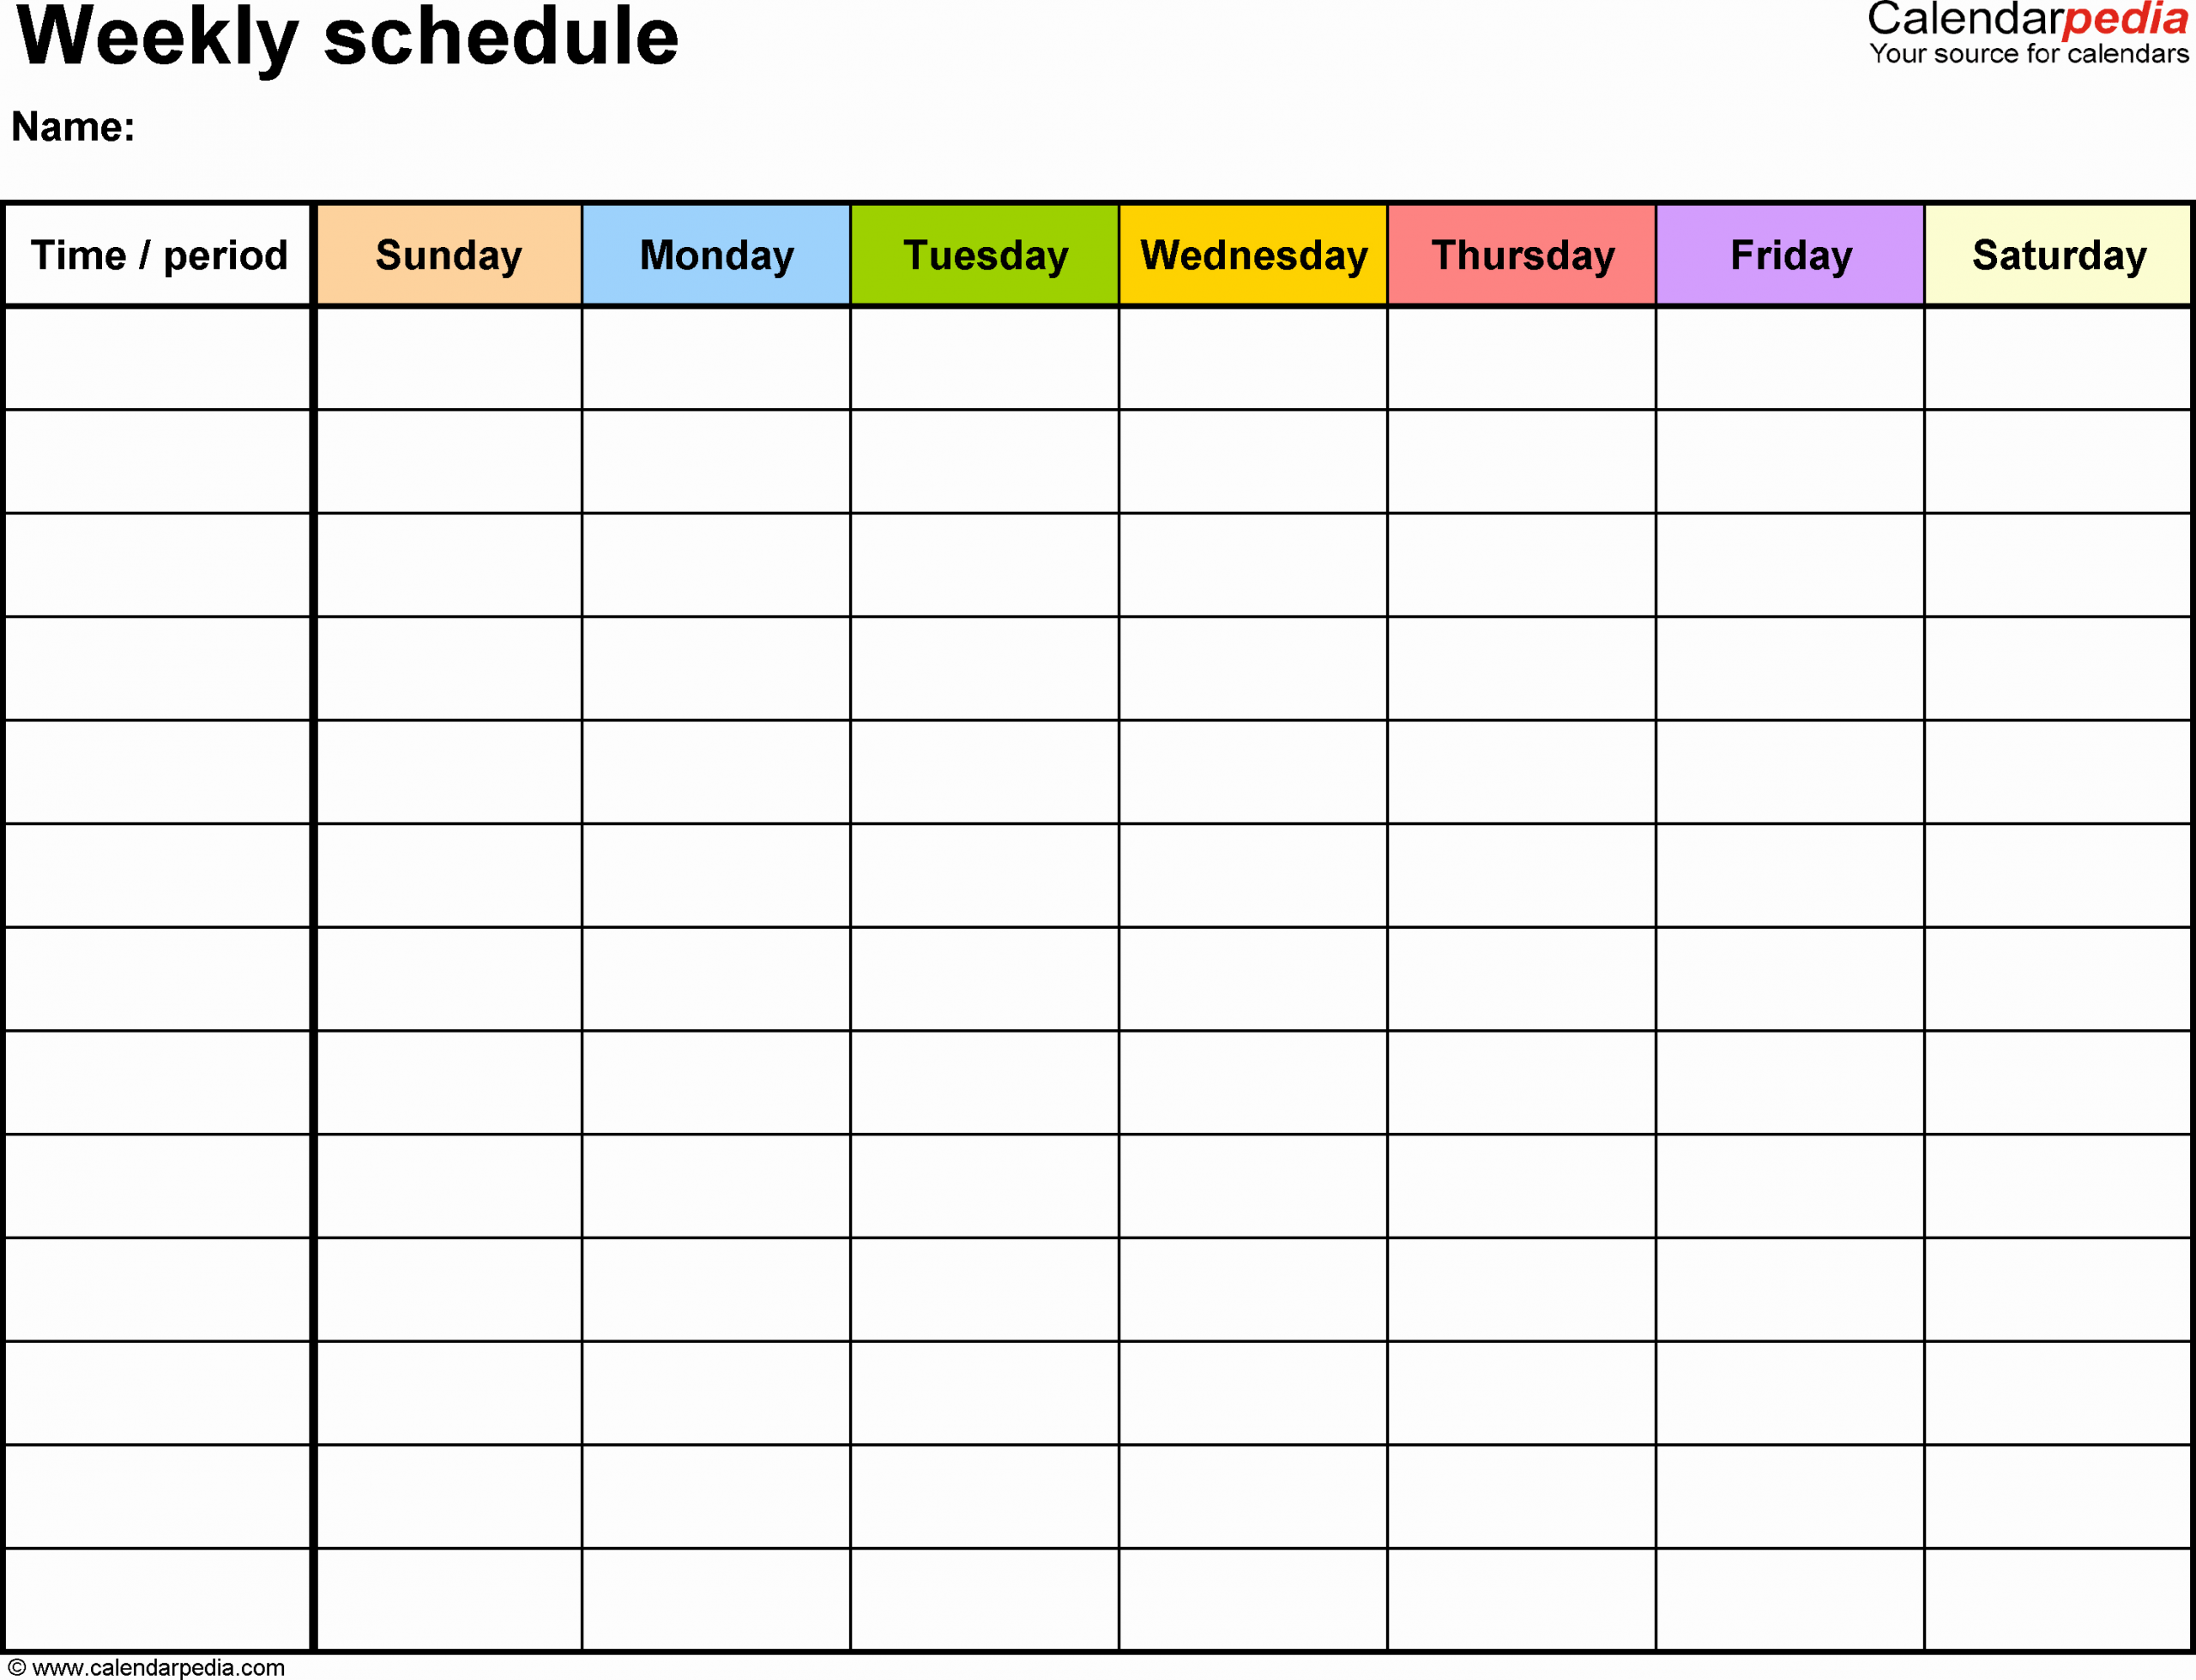 Blank Monthly Schedule Template Beautiful Weekly Schedule Template for Word Version 13 Landscape 1